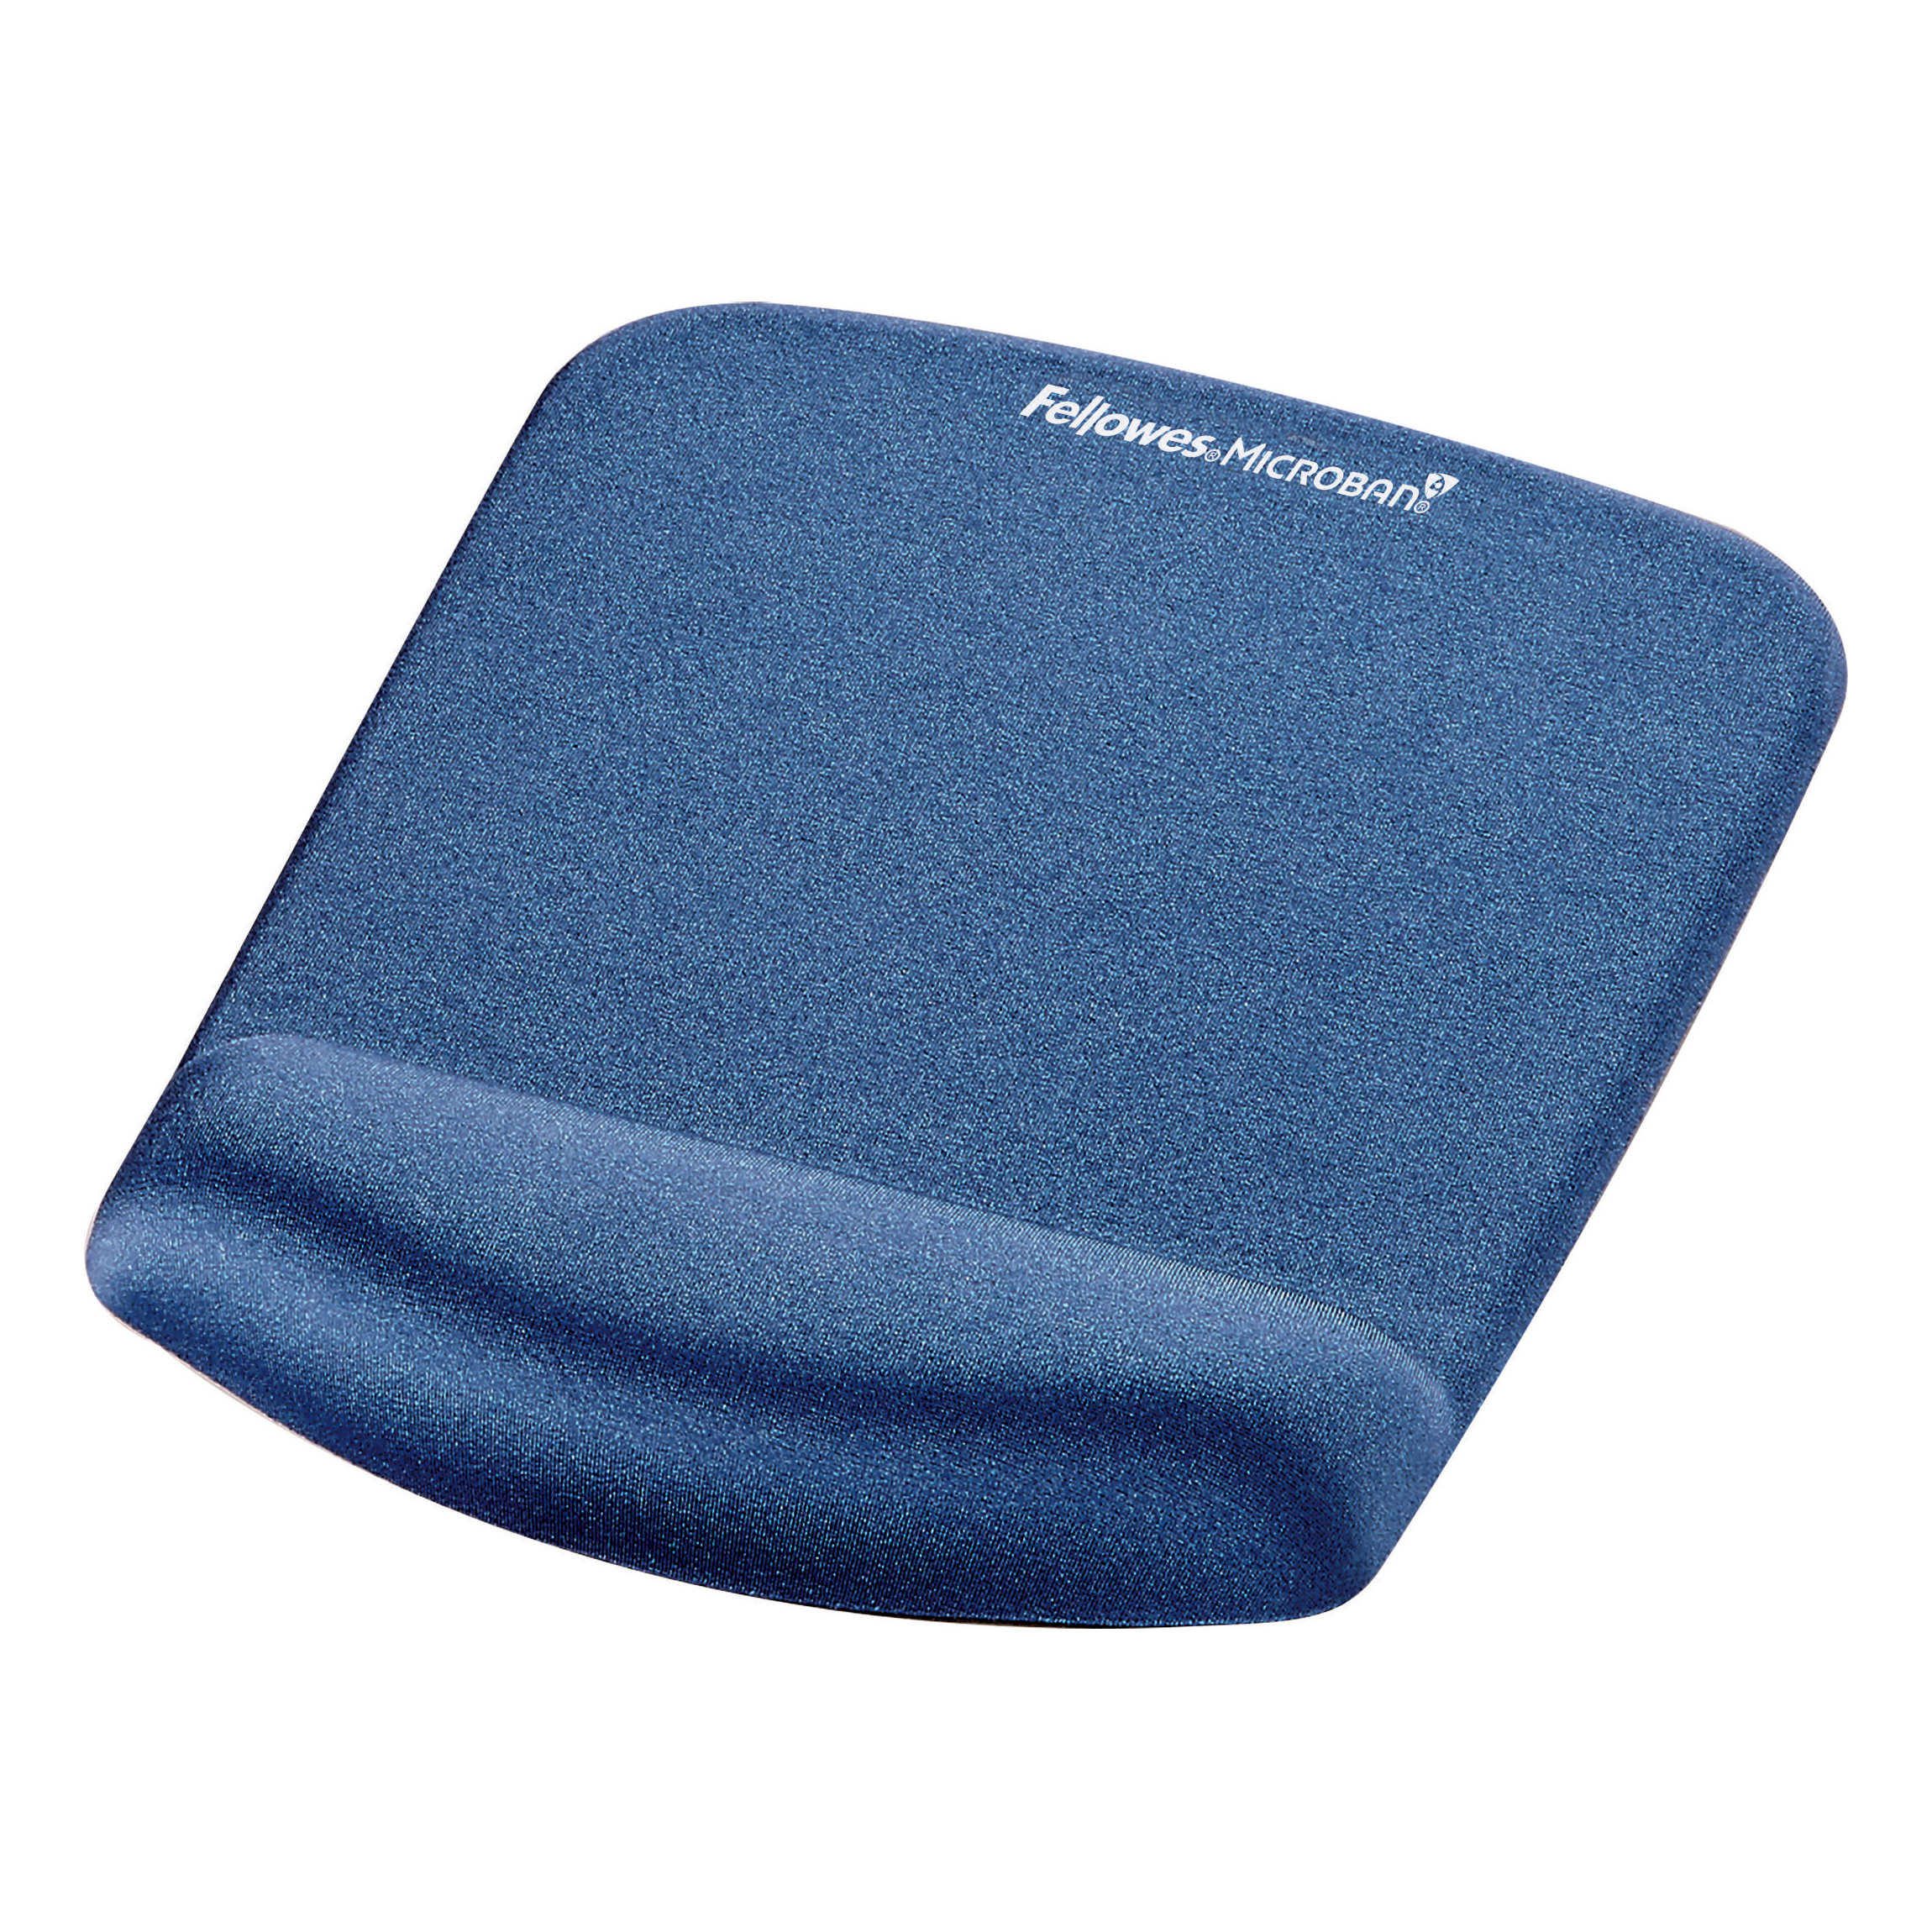 Mouse pads Fellowes PlushTouch Mousepad Wrist Support Blue- Microban 9387302